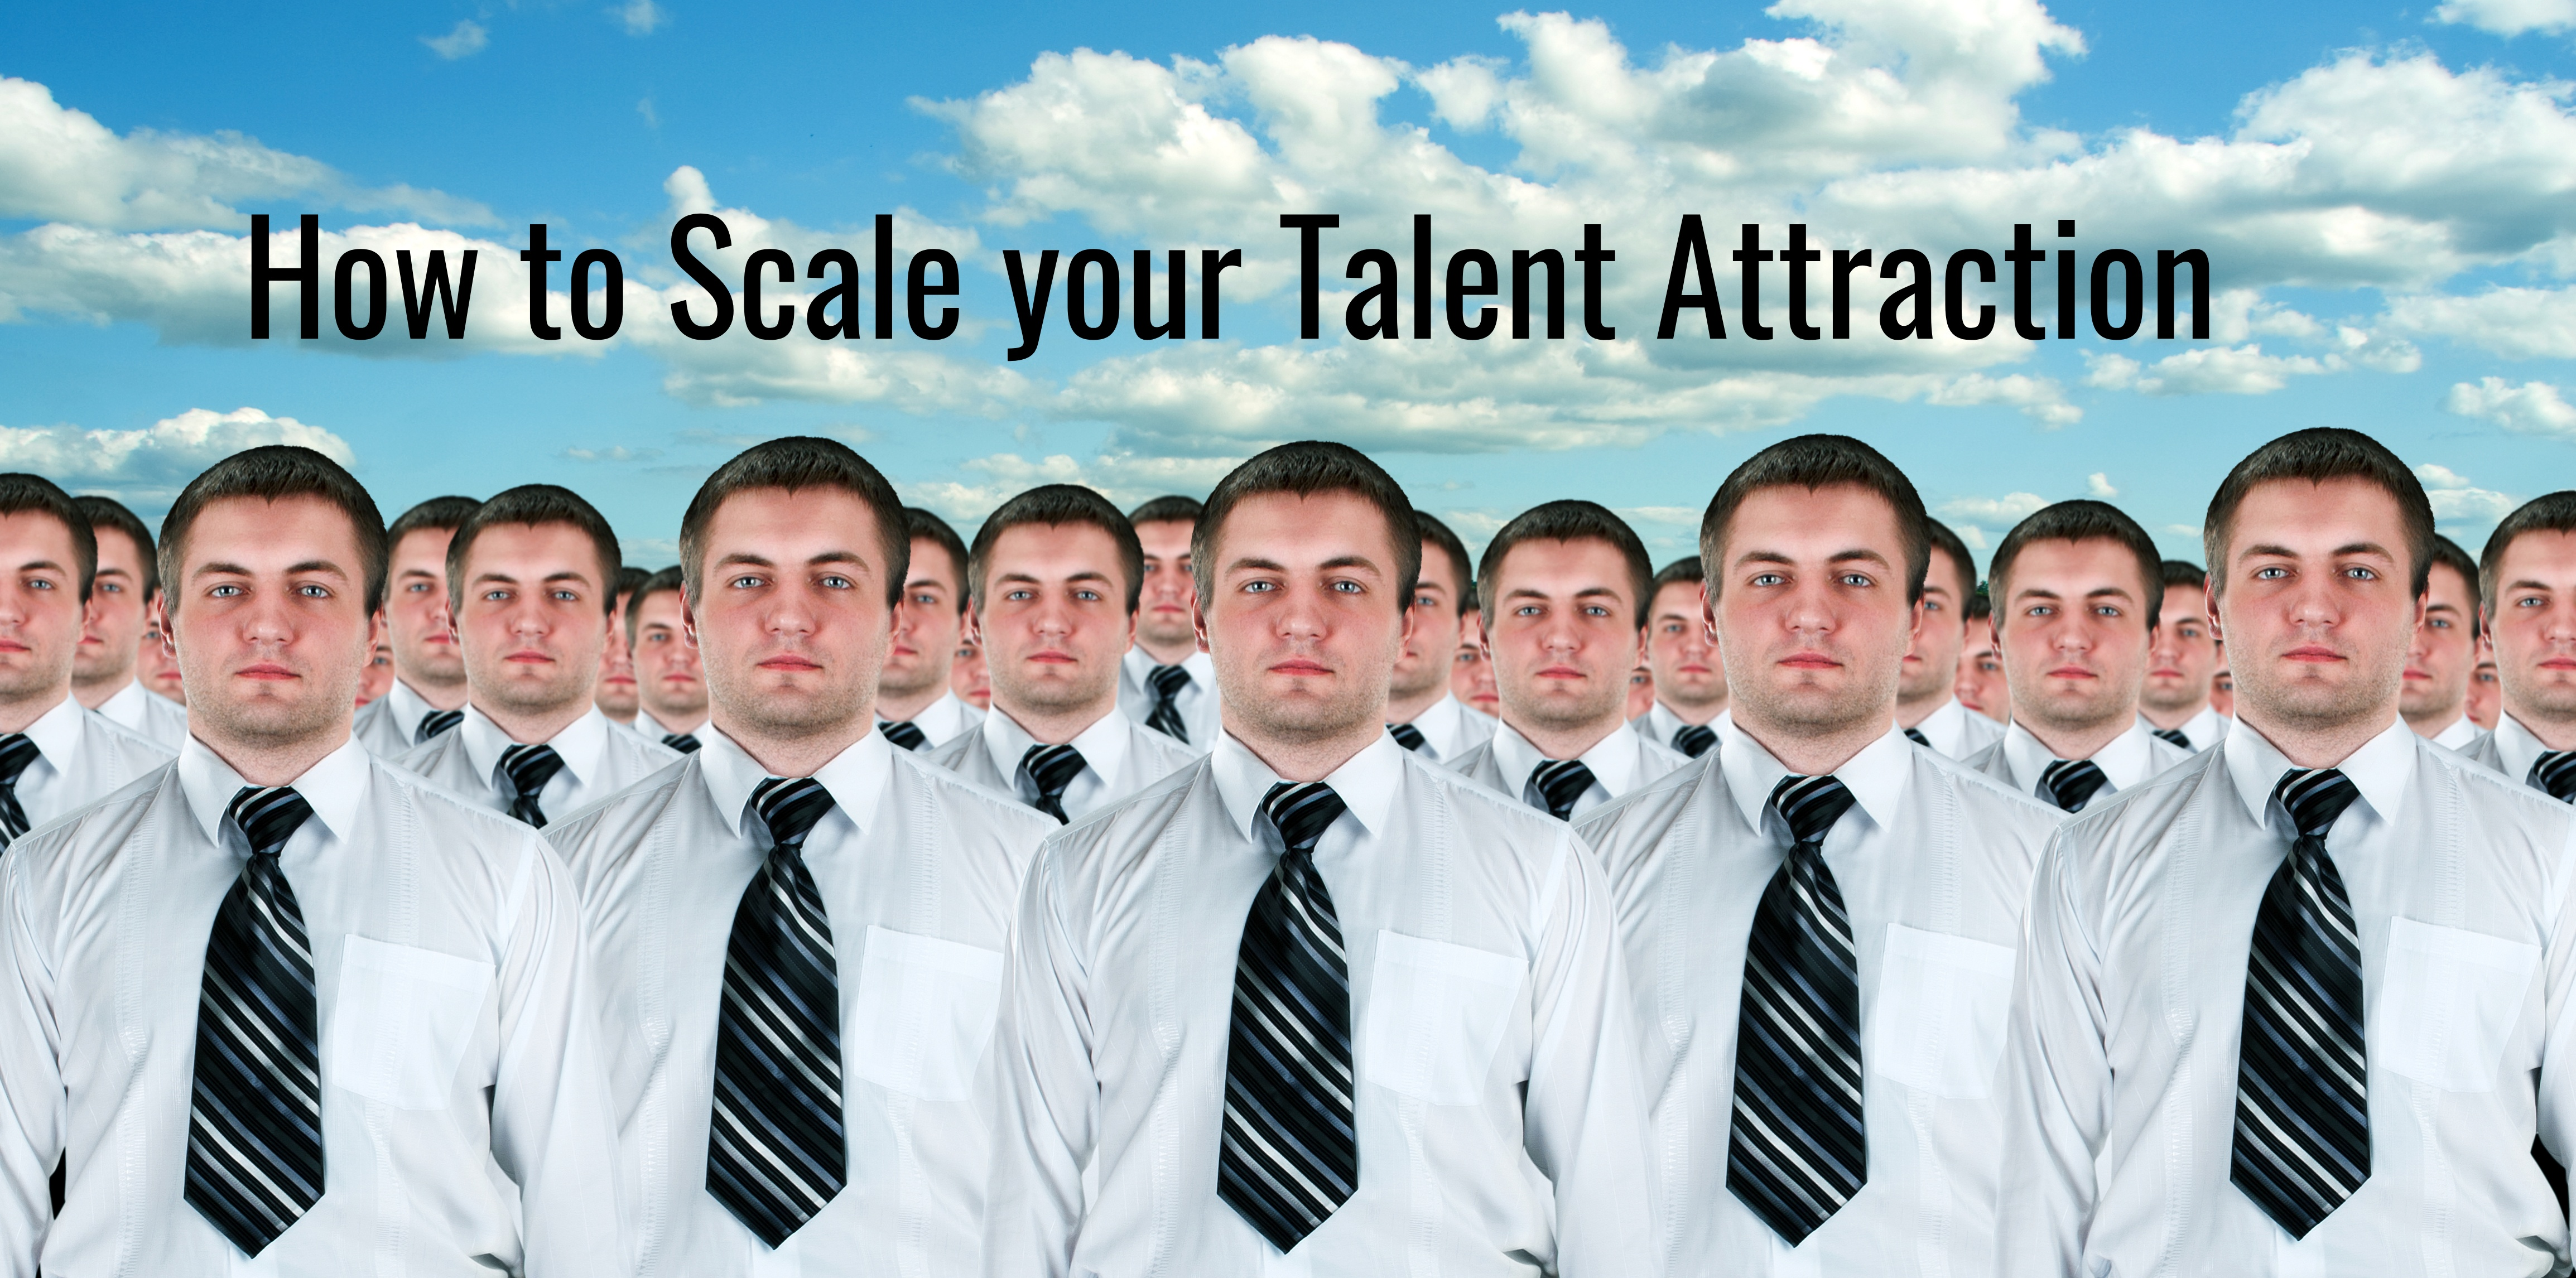 How to scale your Talent Attraction